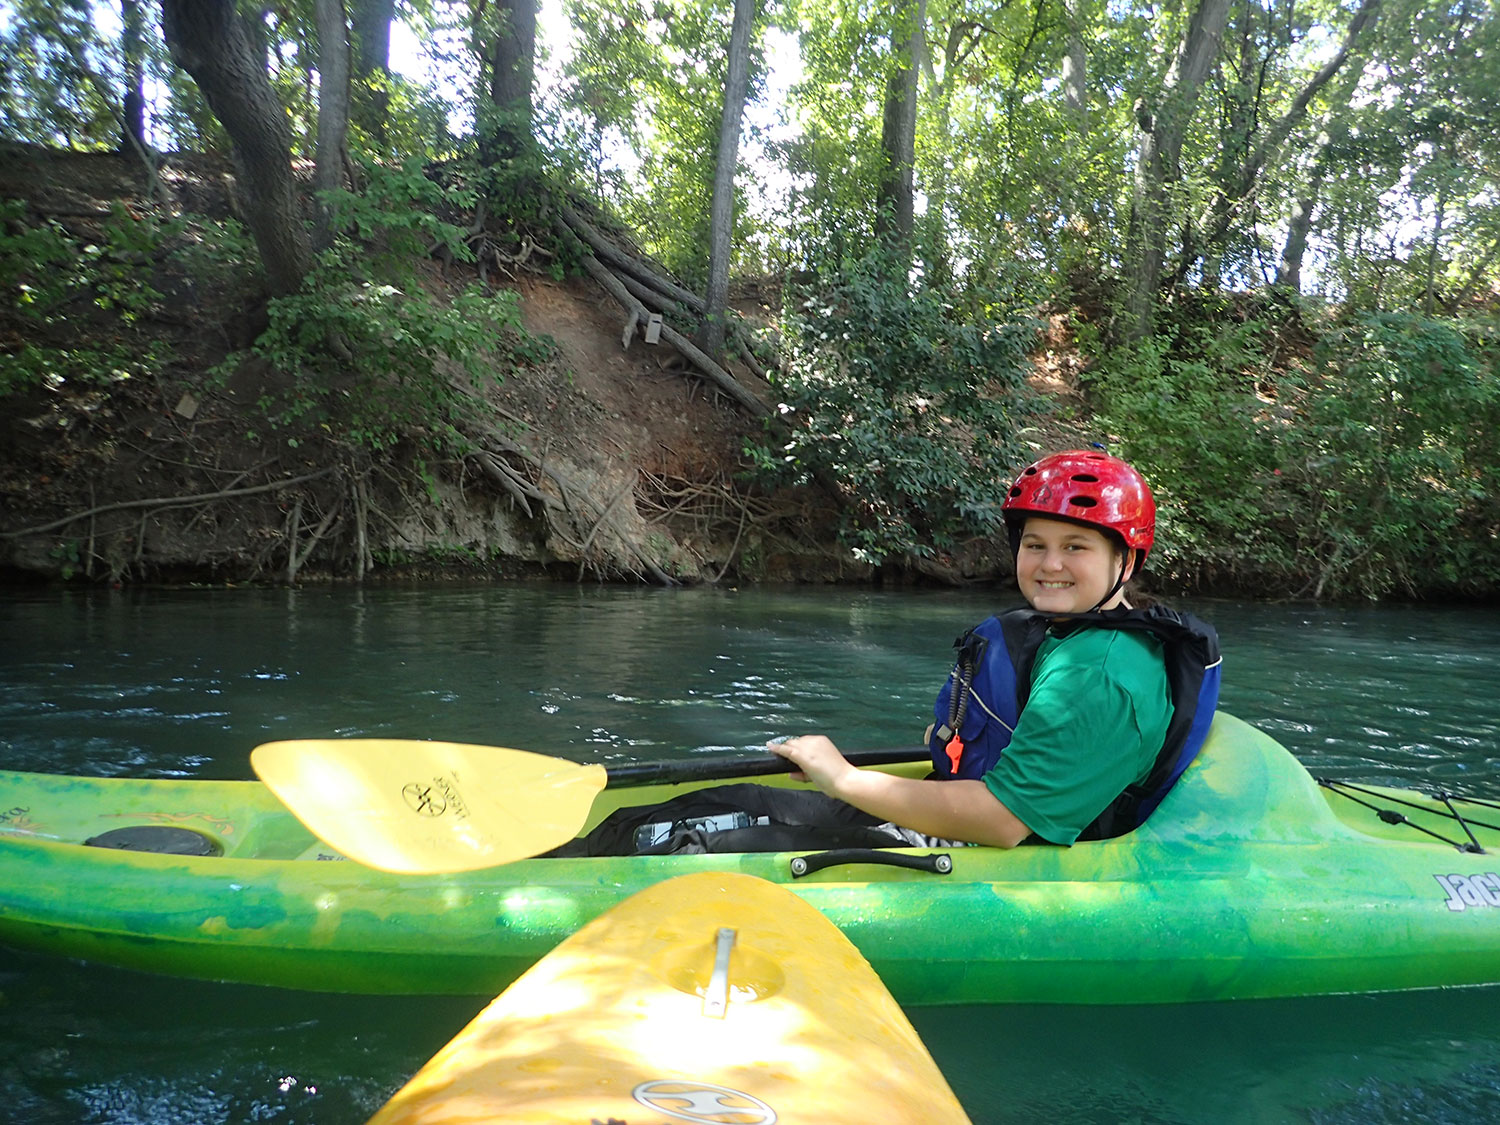 boy smiling while holding a yellow paddle wearing a red helmet while sitting in a green kayak